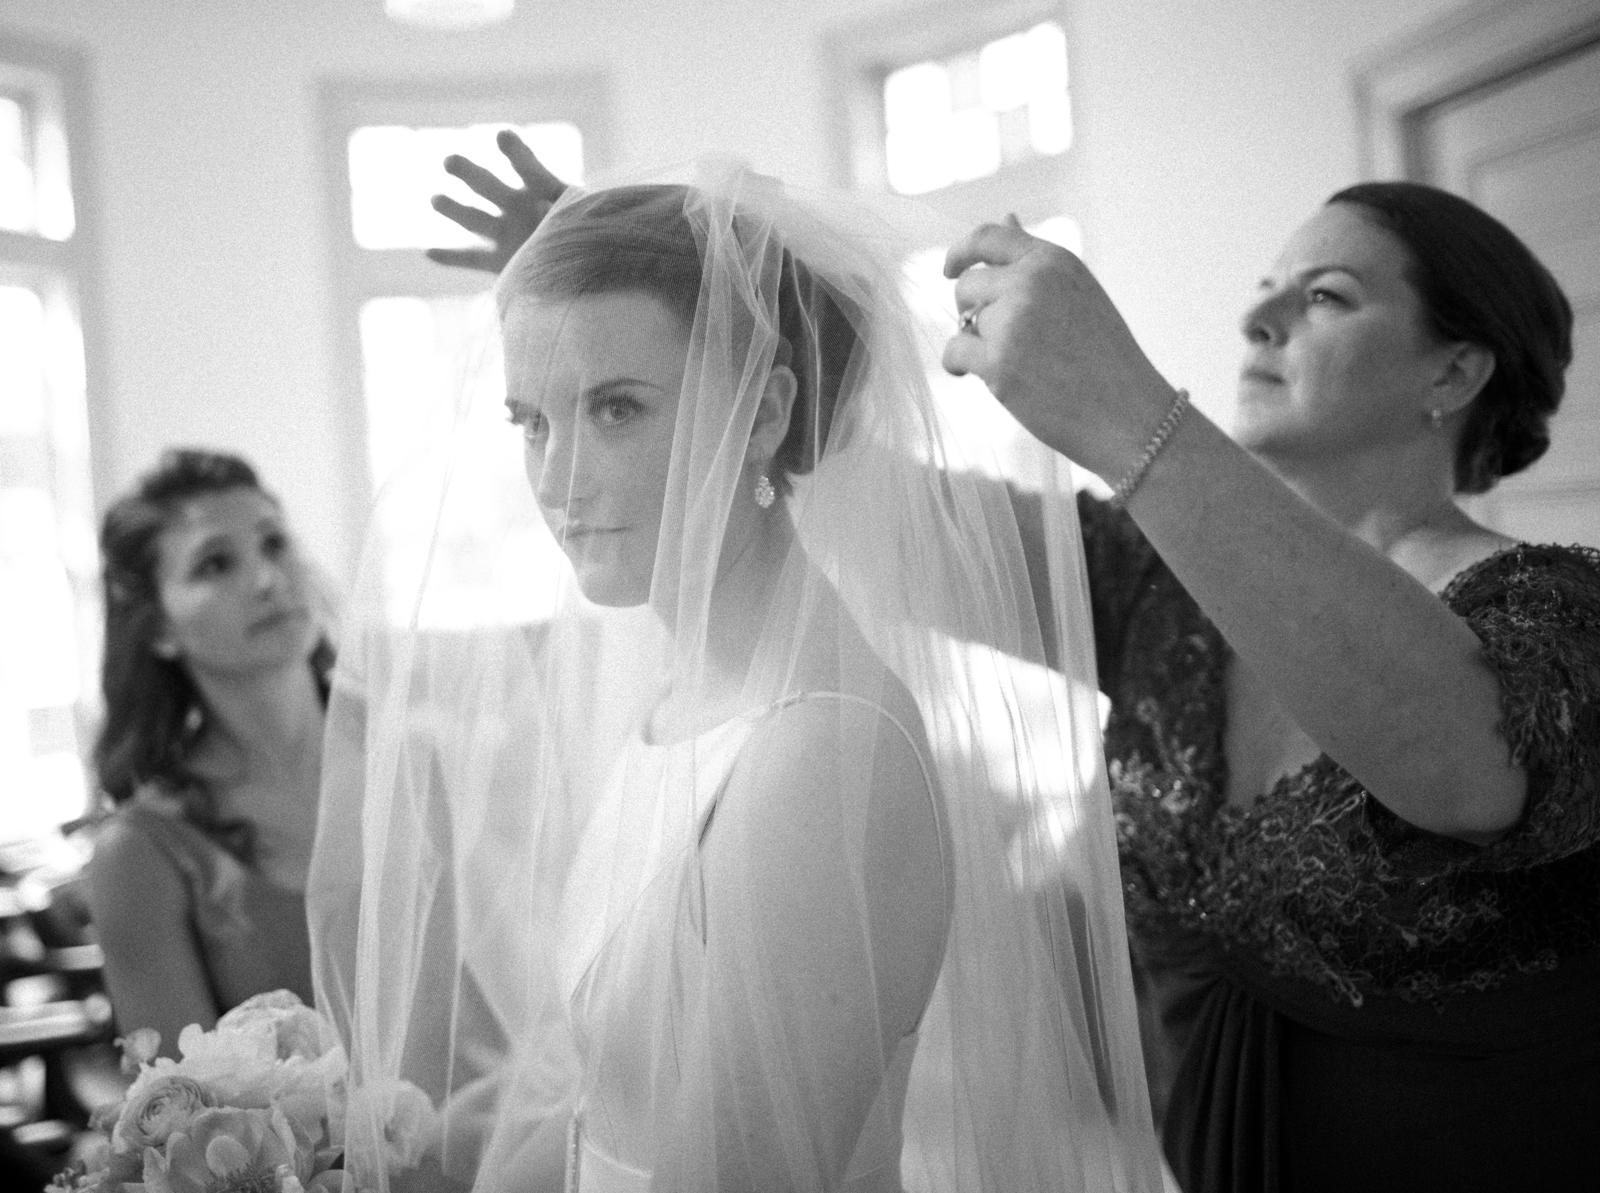 Wedding Photography | A bride has her veil fixed before the wedding ceremony.